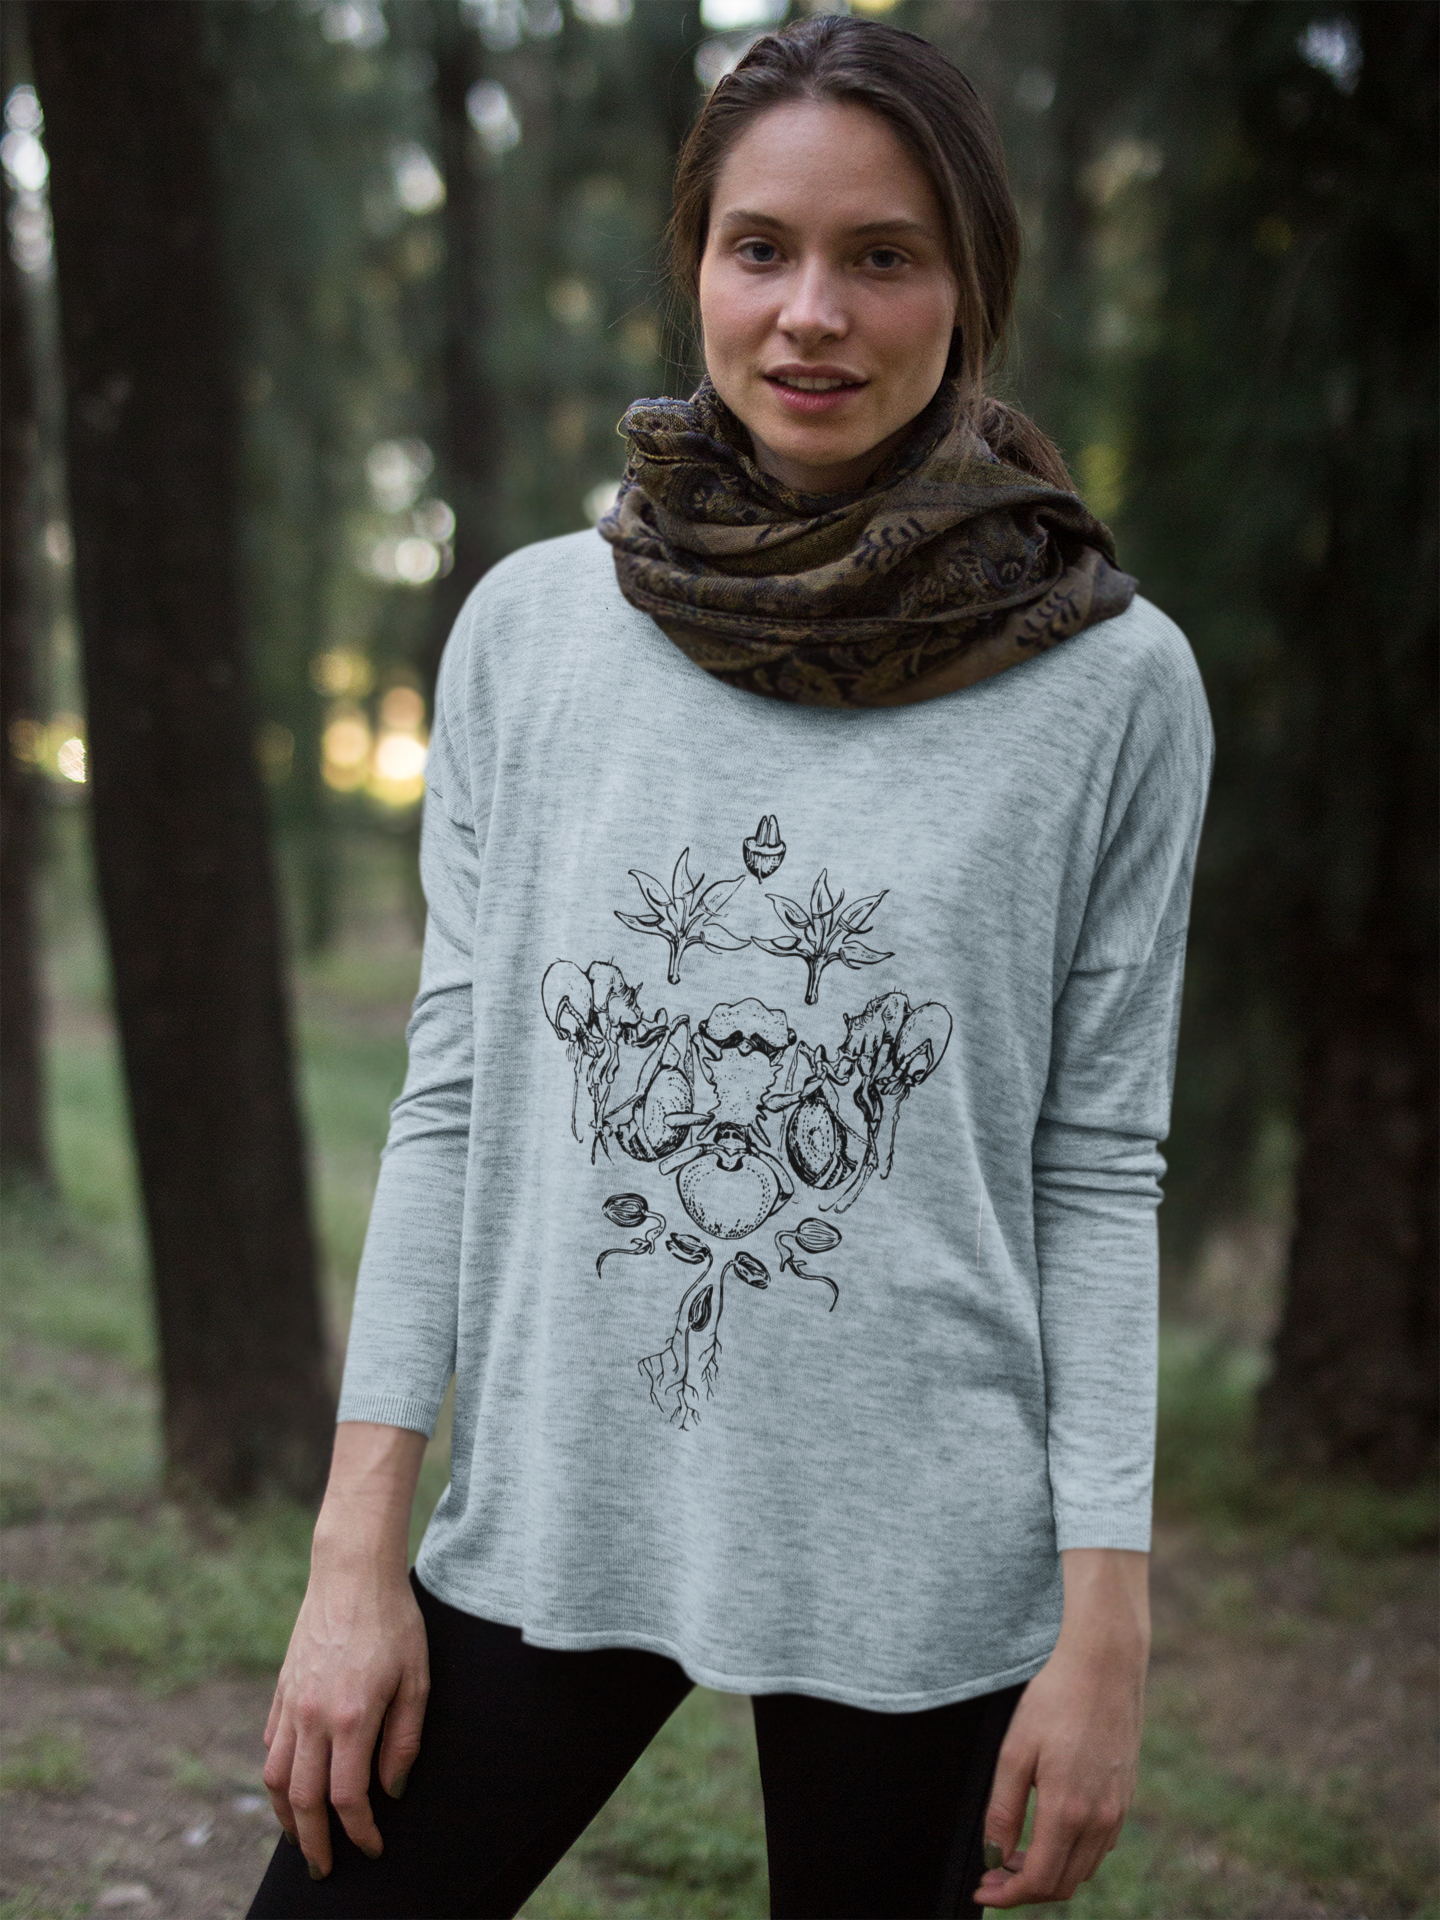 girl-wearing-a-bella-flowie-canvas-long-sleeve-tee-mockup-in-the-woods-a17921 copy.png